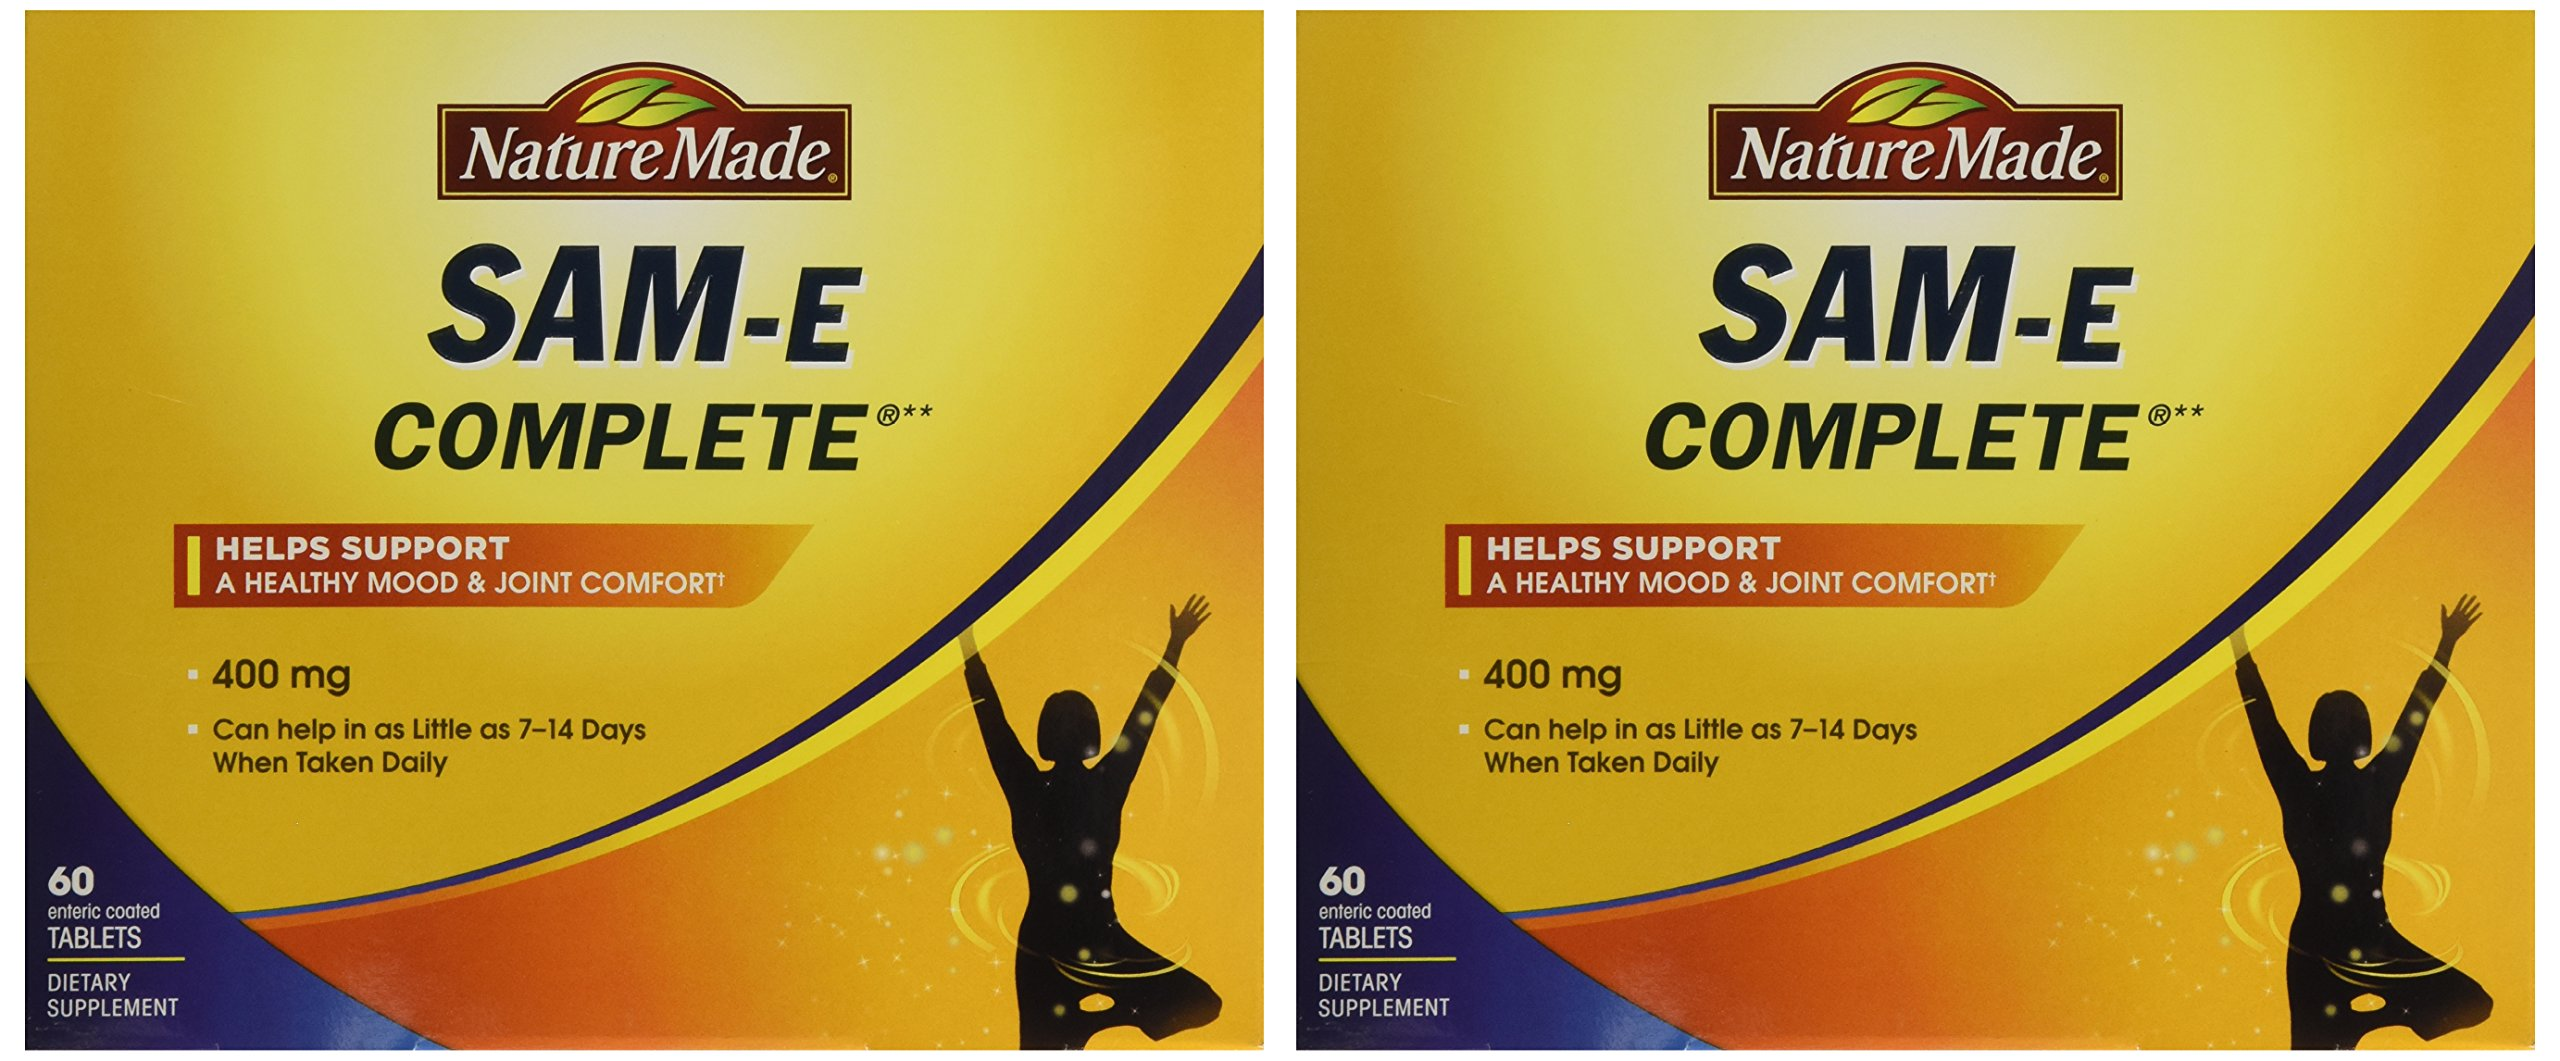 Nature Made SAM-e Complete 400 mg - 2 Boxes, 60 Enteric Tablets Each by Nature Made